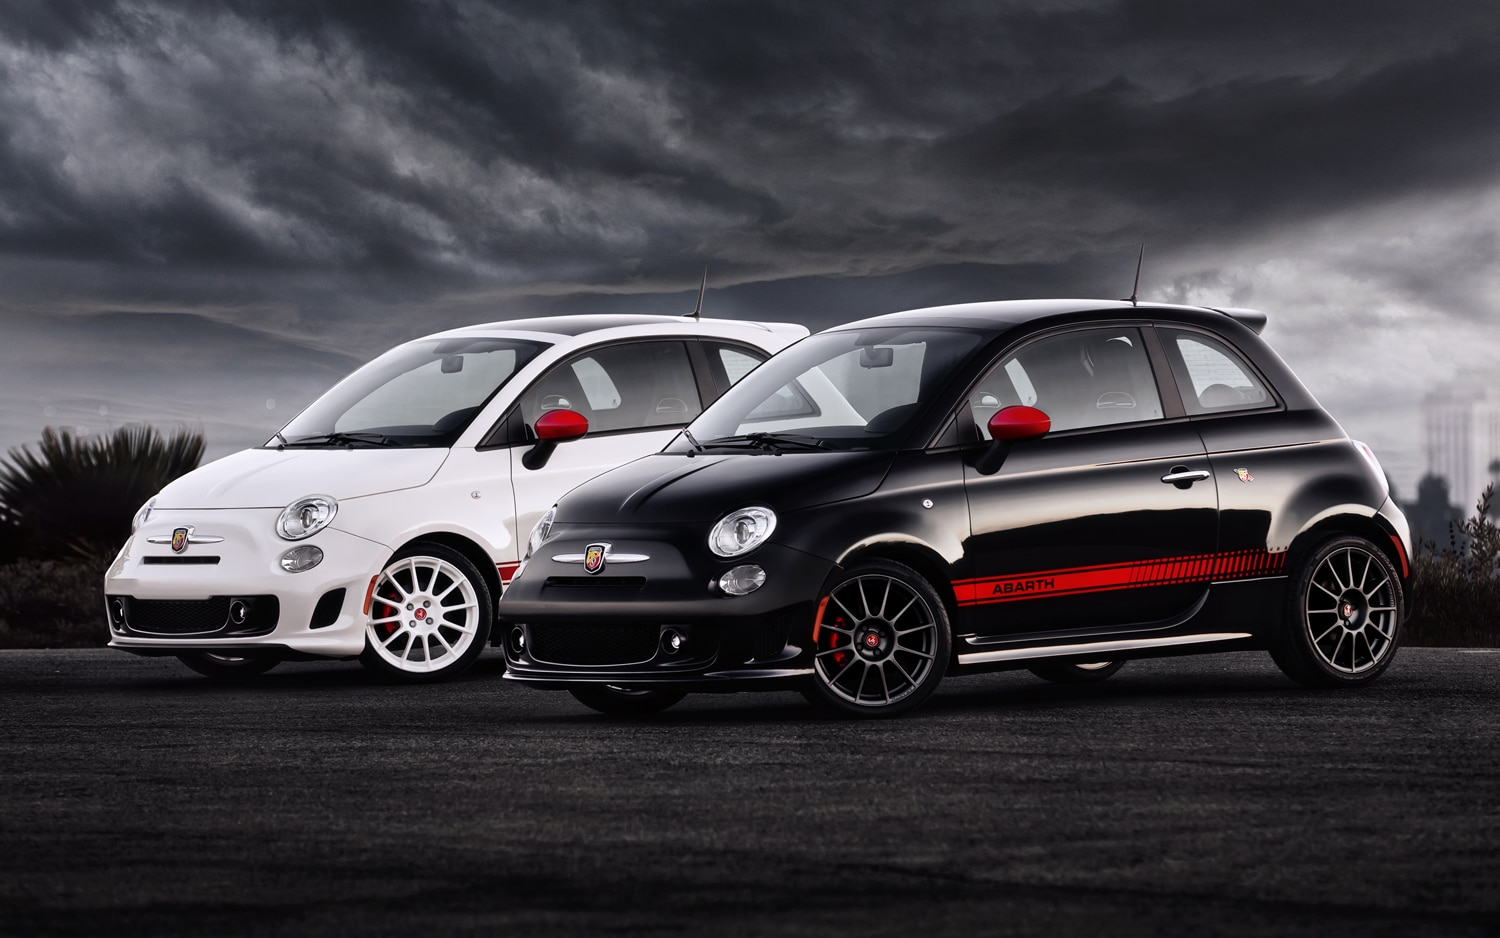 fiat prices 2012 500 abarth at 22 700 includes driving. Black Bedroom Furniture Sets. Home Design Ideas